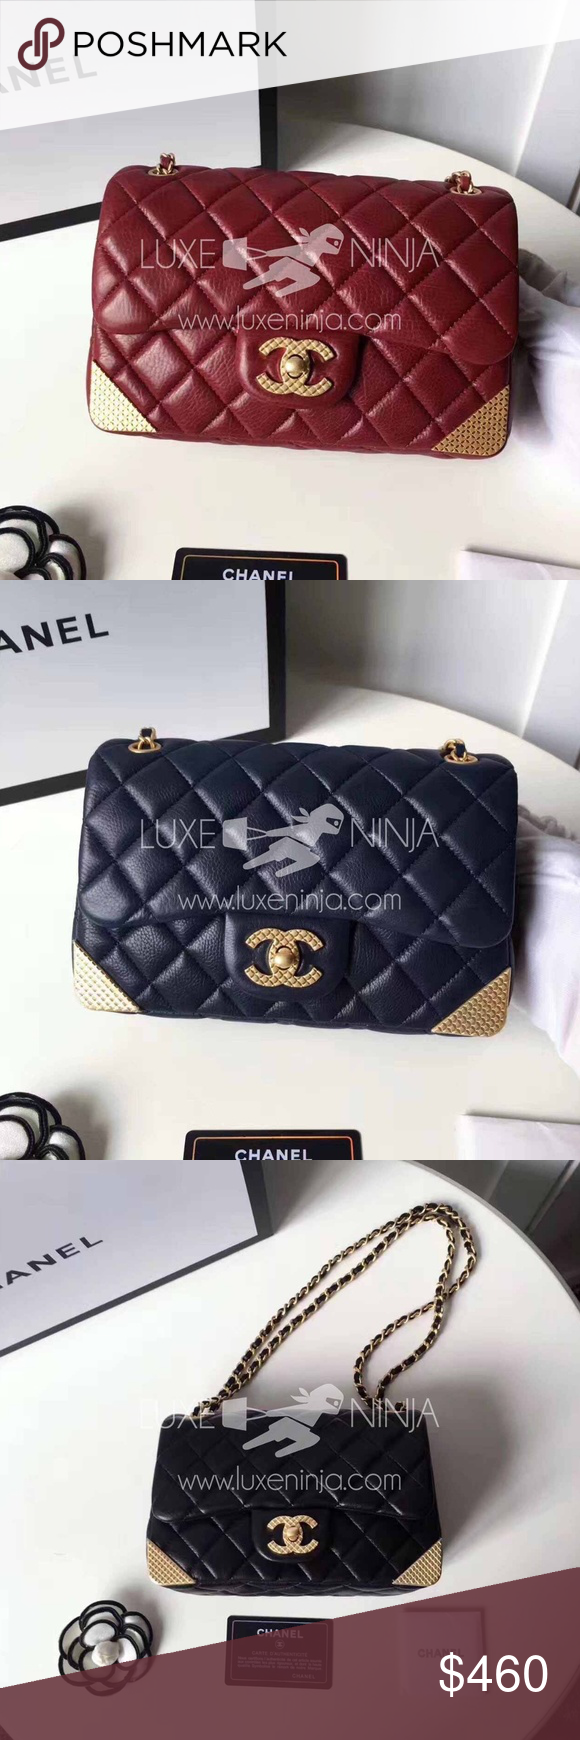 5f5c7894cbc8 Chanel Triangle Flap Bag 2017! 2017 Season Chanel Triangle Flap Bag  Excellent Quality Distressed Lambskin Leather with Gold Hardware Ships  within 7-12 days.